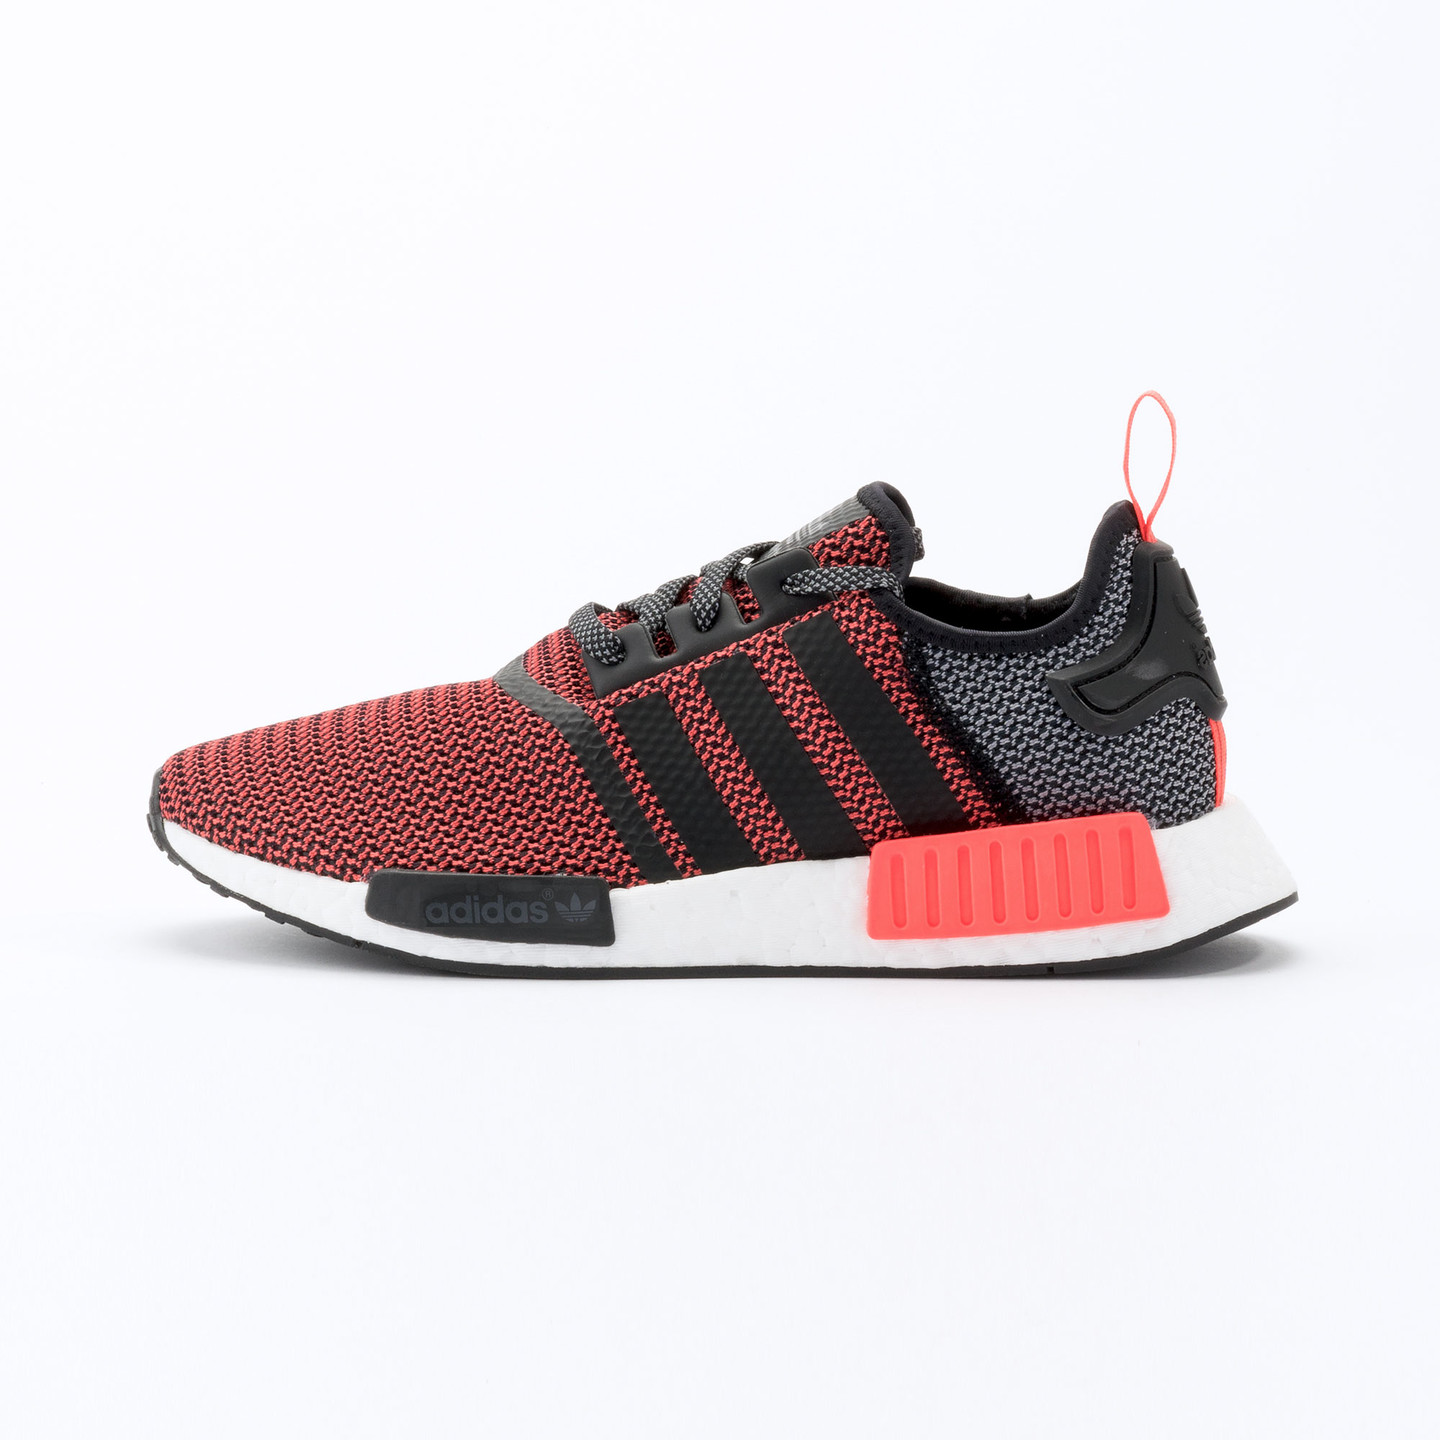 Adidas NMD R1 Runner Lush Red / Core Black S79158-40